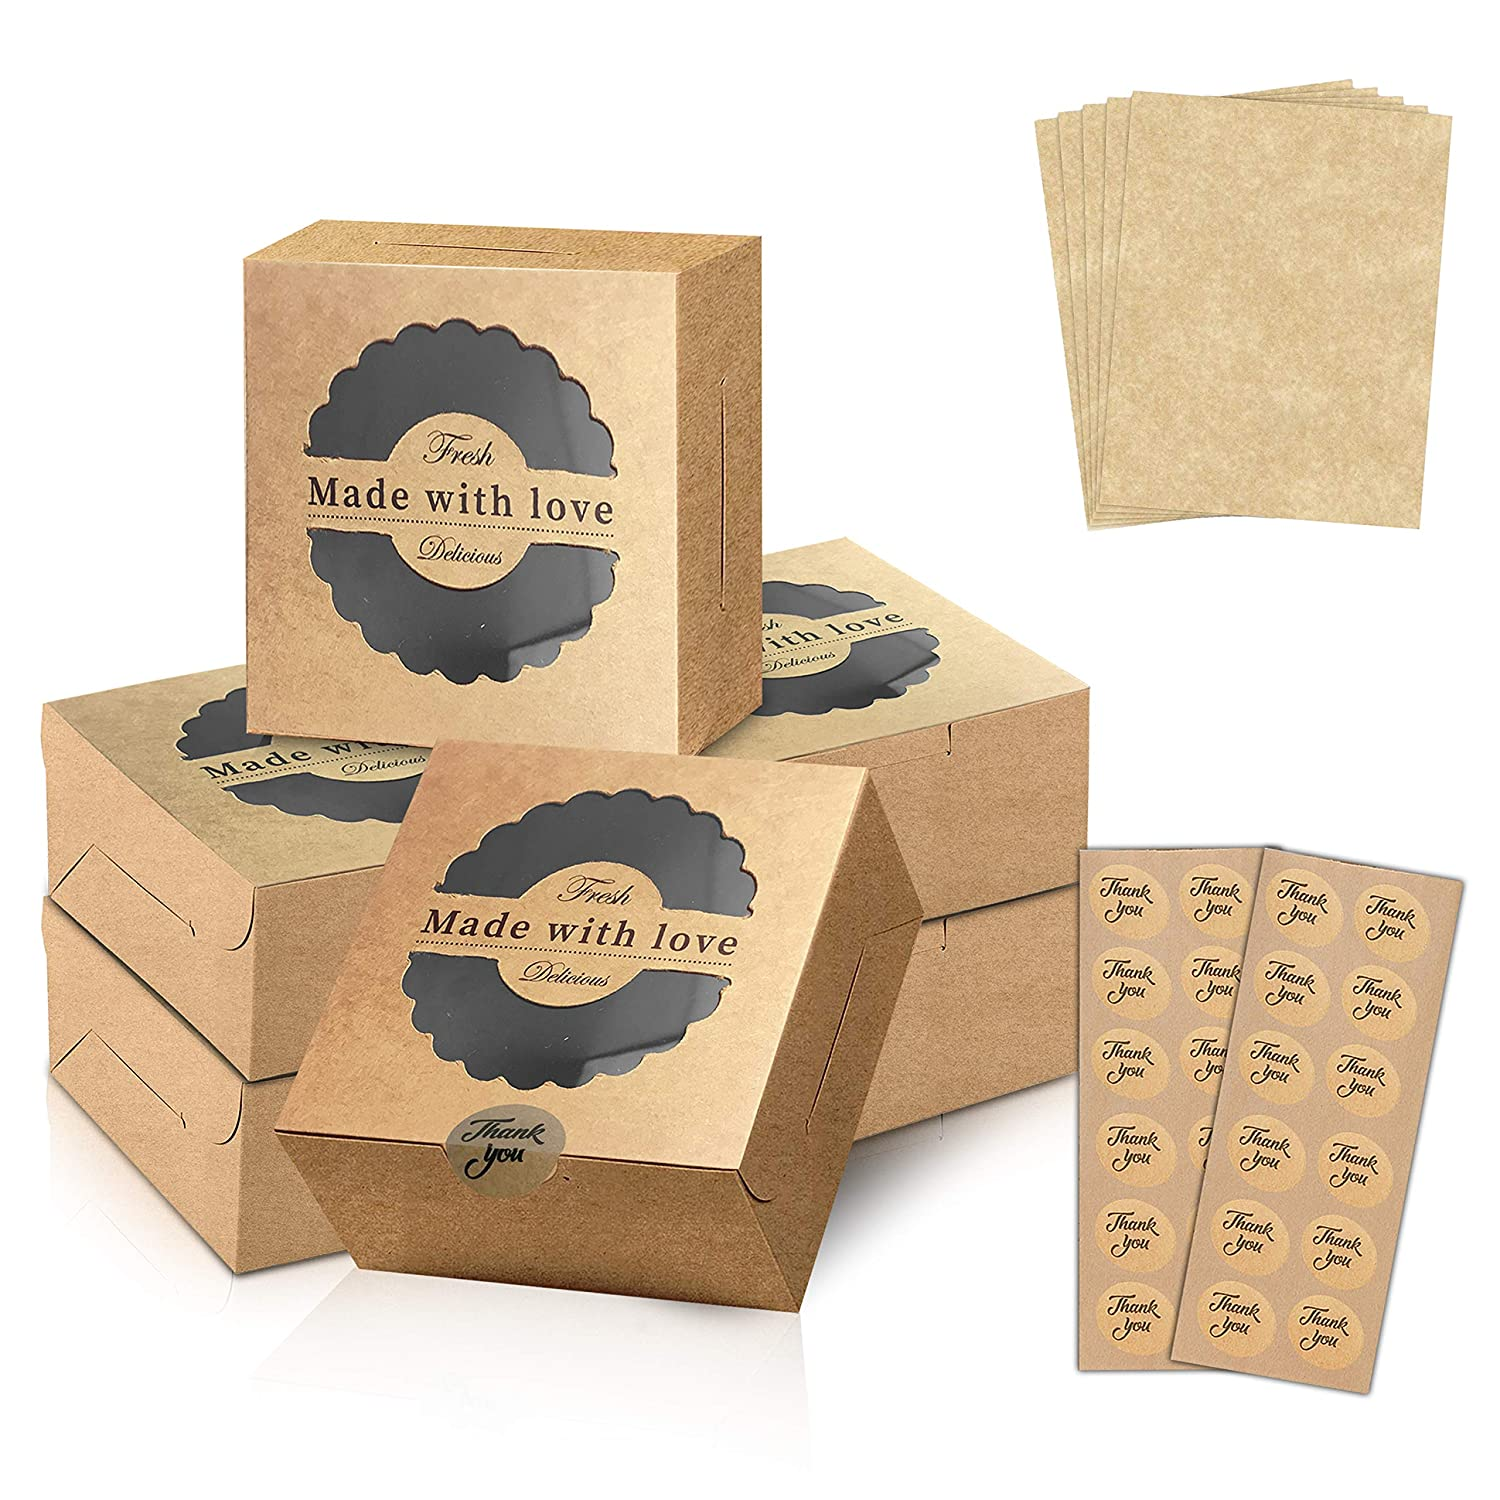 Bakery Boxes – Kraft Boxes with Window – Dessert Boxes with Parchment Paper and Stickers – Small Box for Cakes, Cupcakes and Cookies – Versatile and Convenient Packaging – 4 x 4 x 3-inch